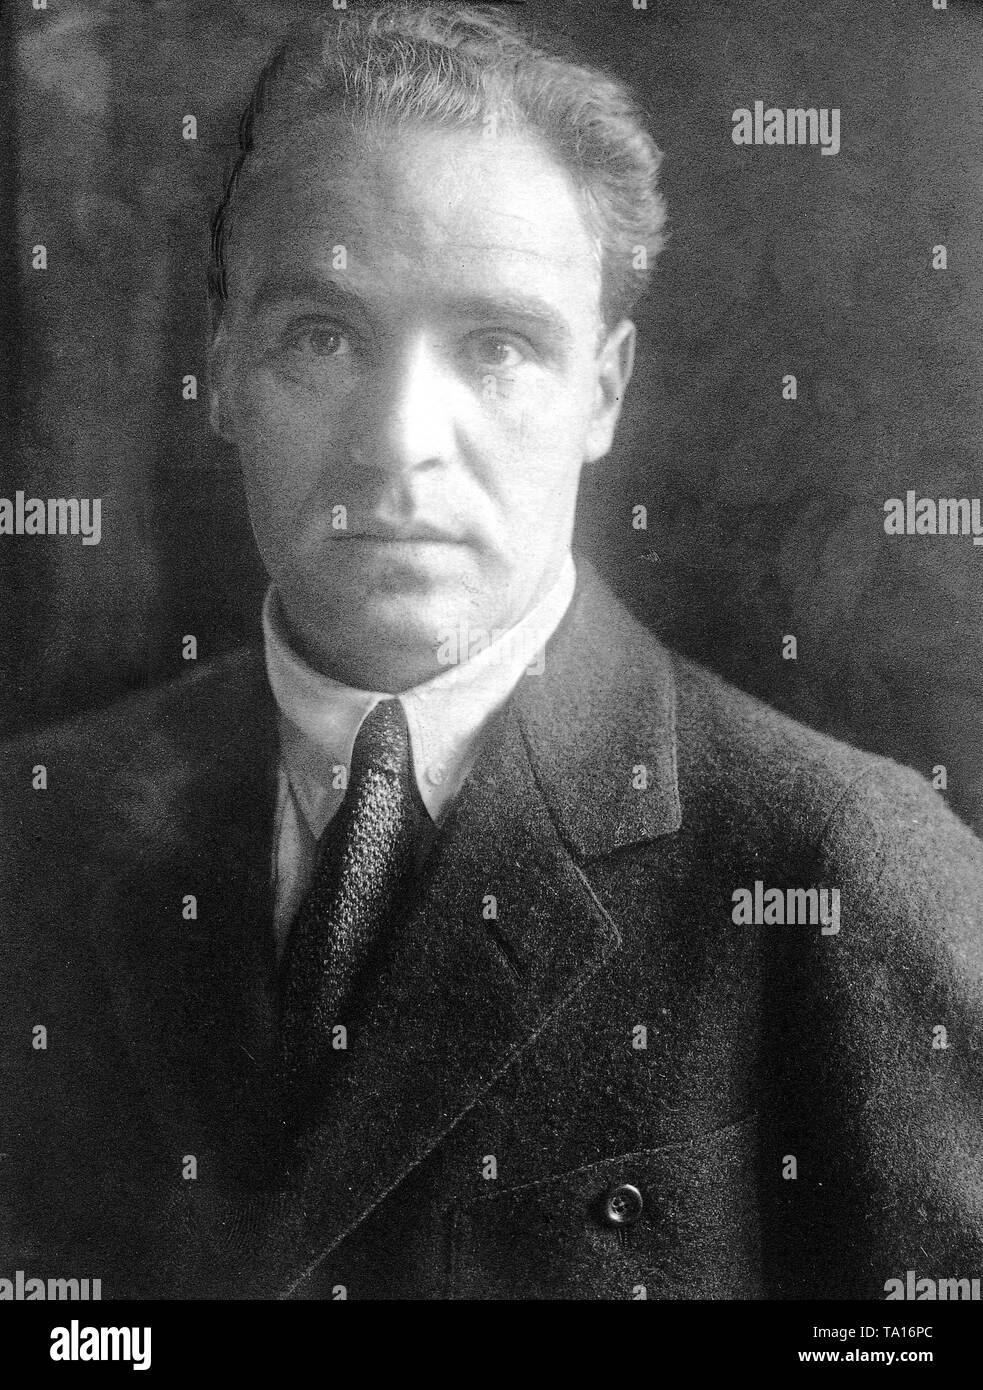 Portrait of Kasimir Edschmid, German writer. Undated photo, probably from the 1920s. Stock Photo